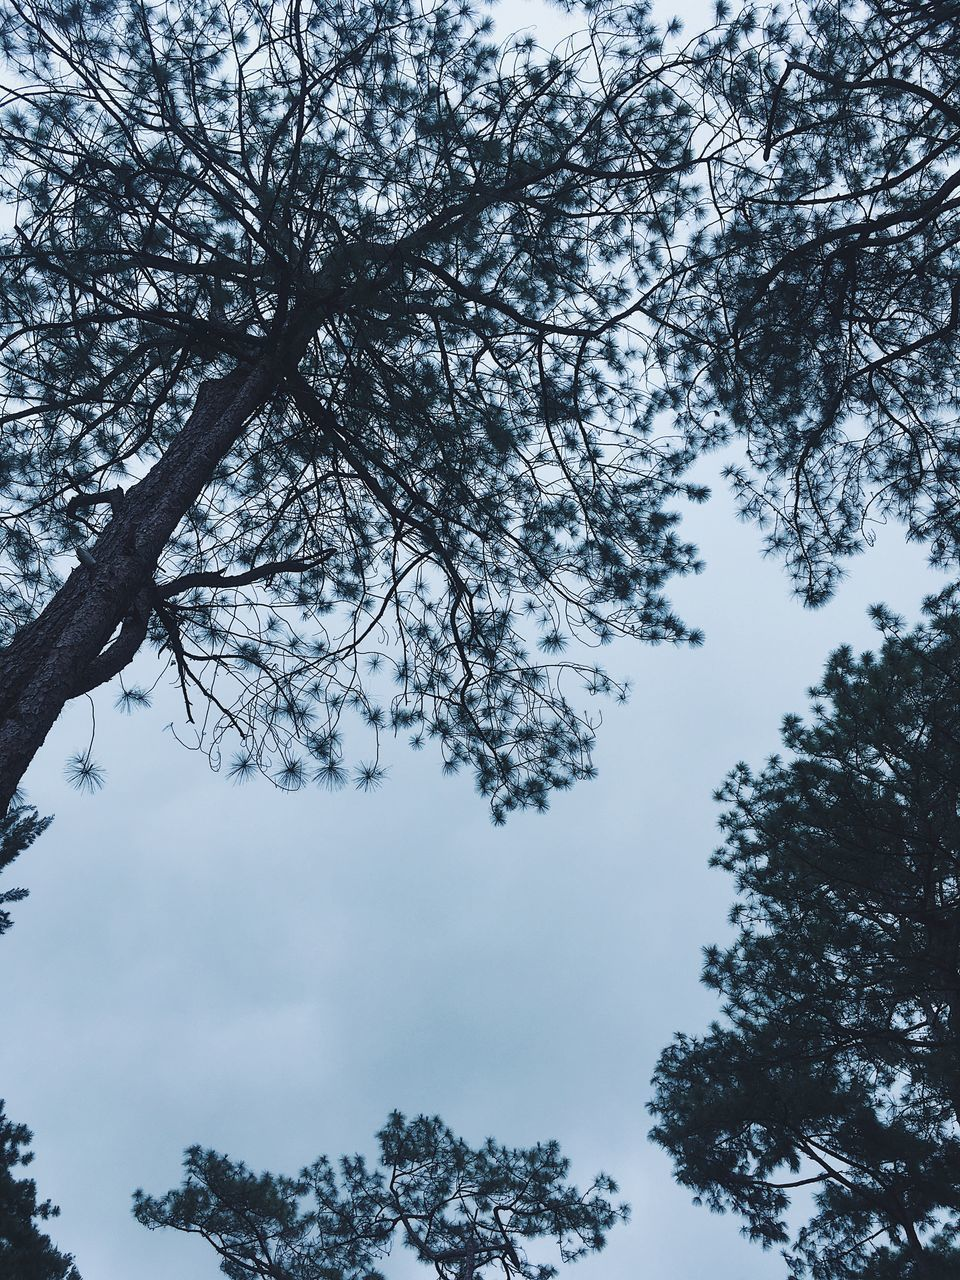 tree, plant, beauty in nature, sky, low angle view, tranquility, branch, growth, no people, nature, day, tranquil scene, scenics - nature, outdoors, cloud - sky, winter, cold temperature, forest, non-urban scene, directly below, tree canopy